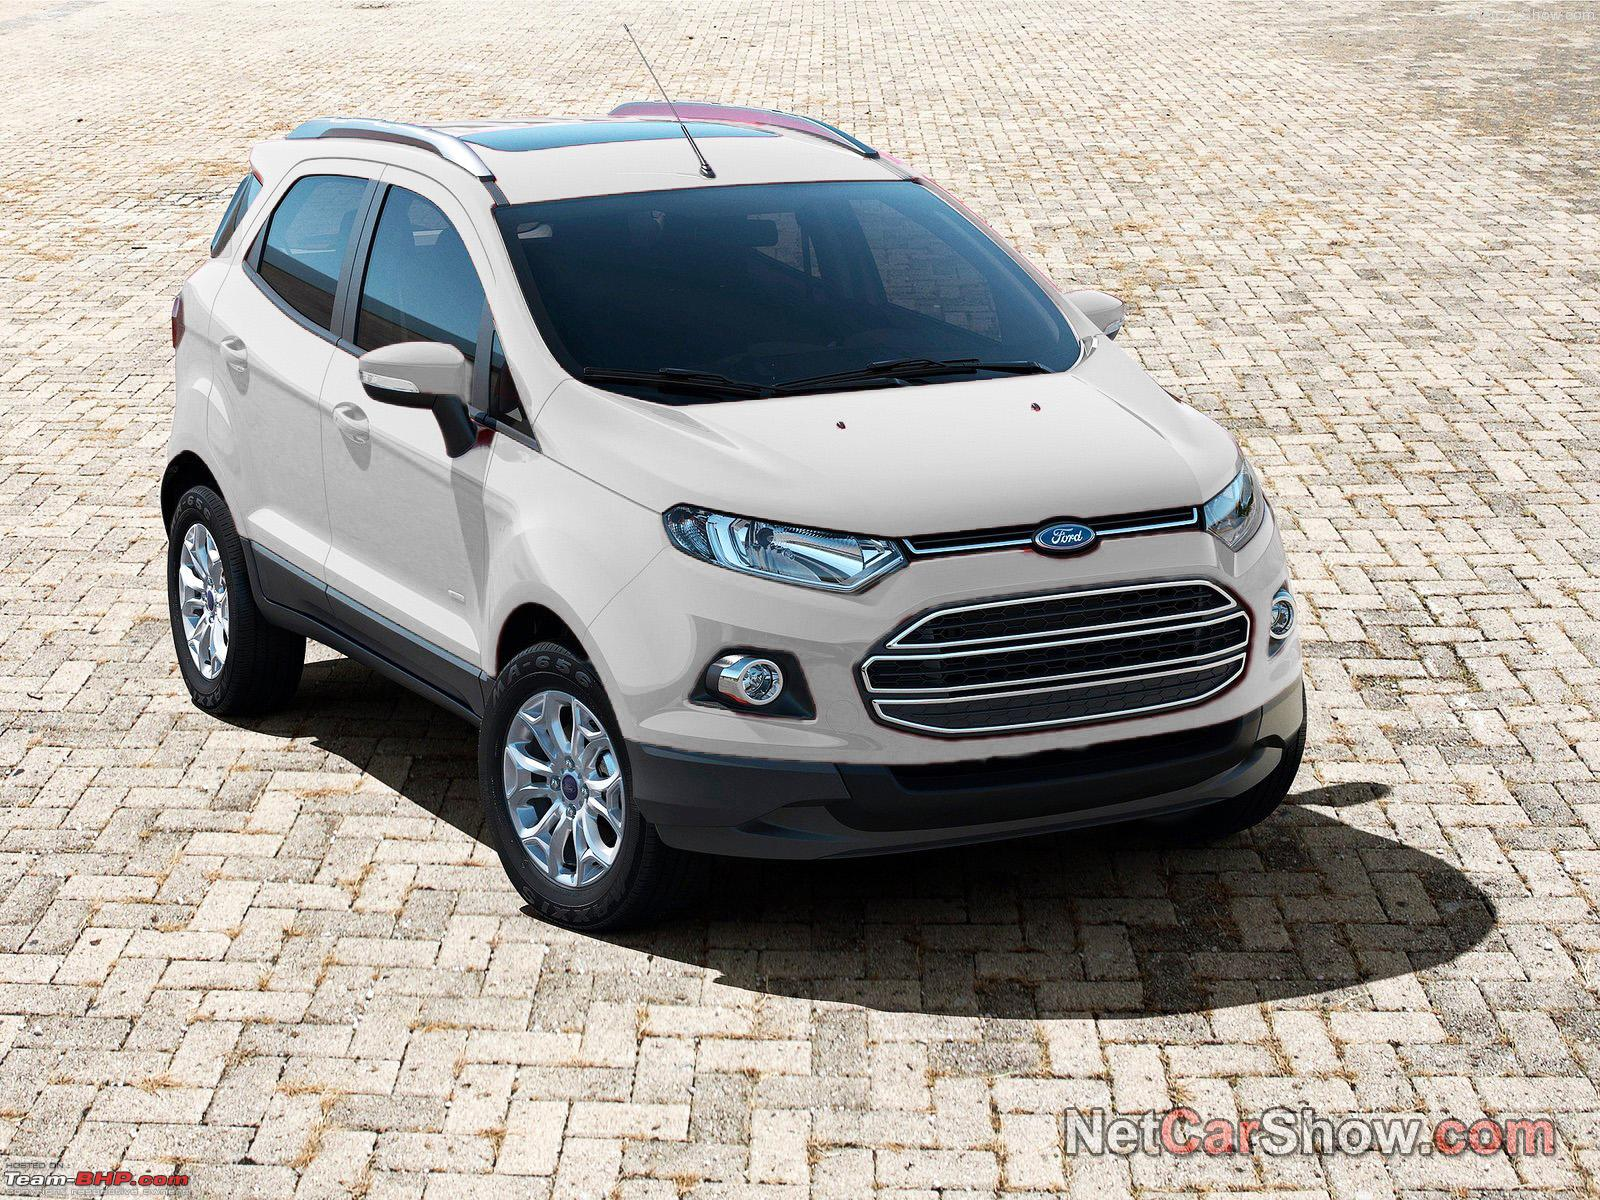 2013 ford ecosport i drove it pinterest ford ecosport ford and cars